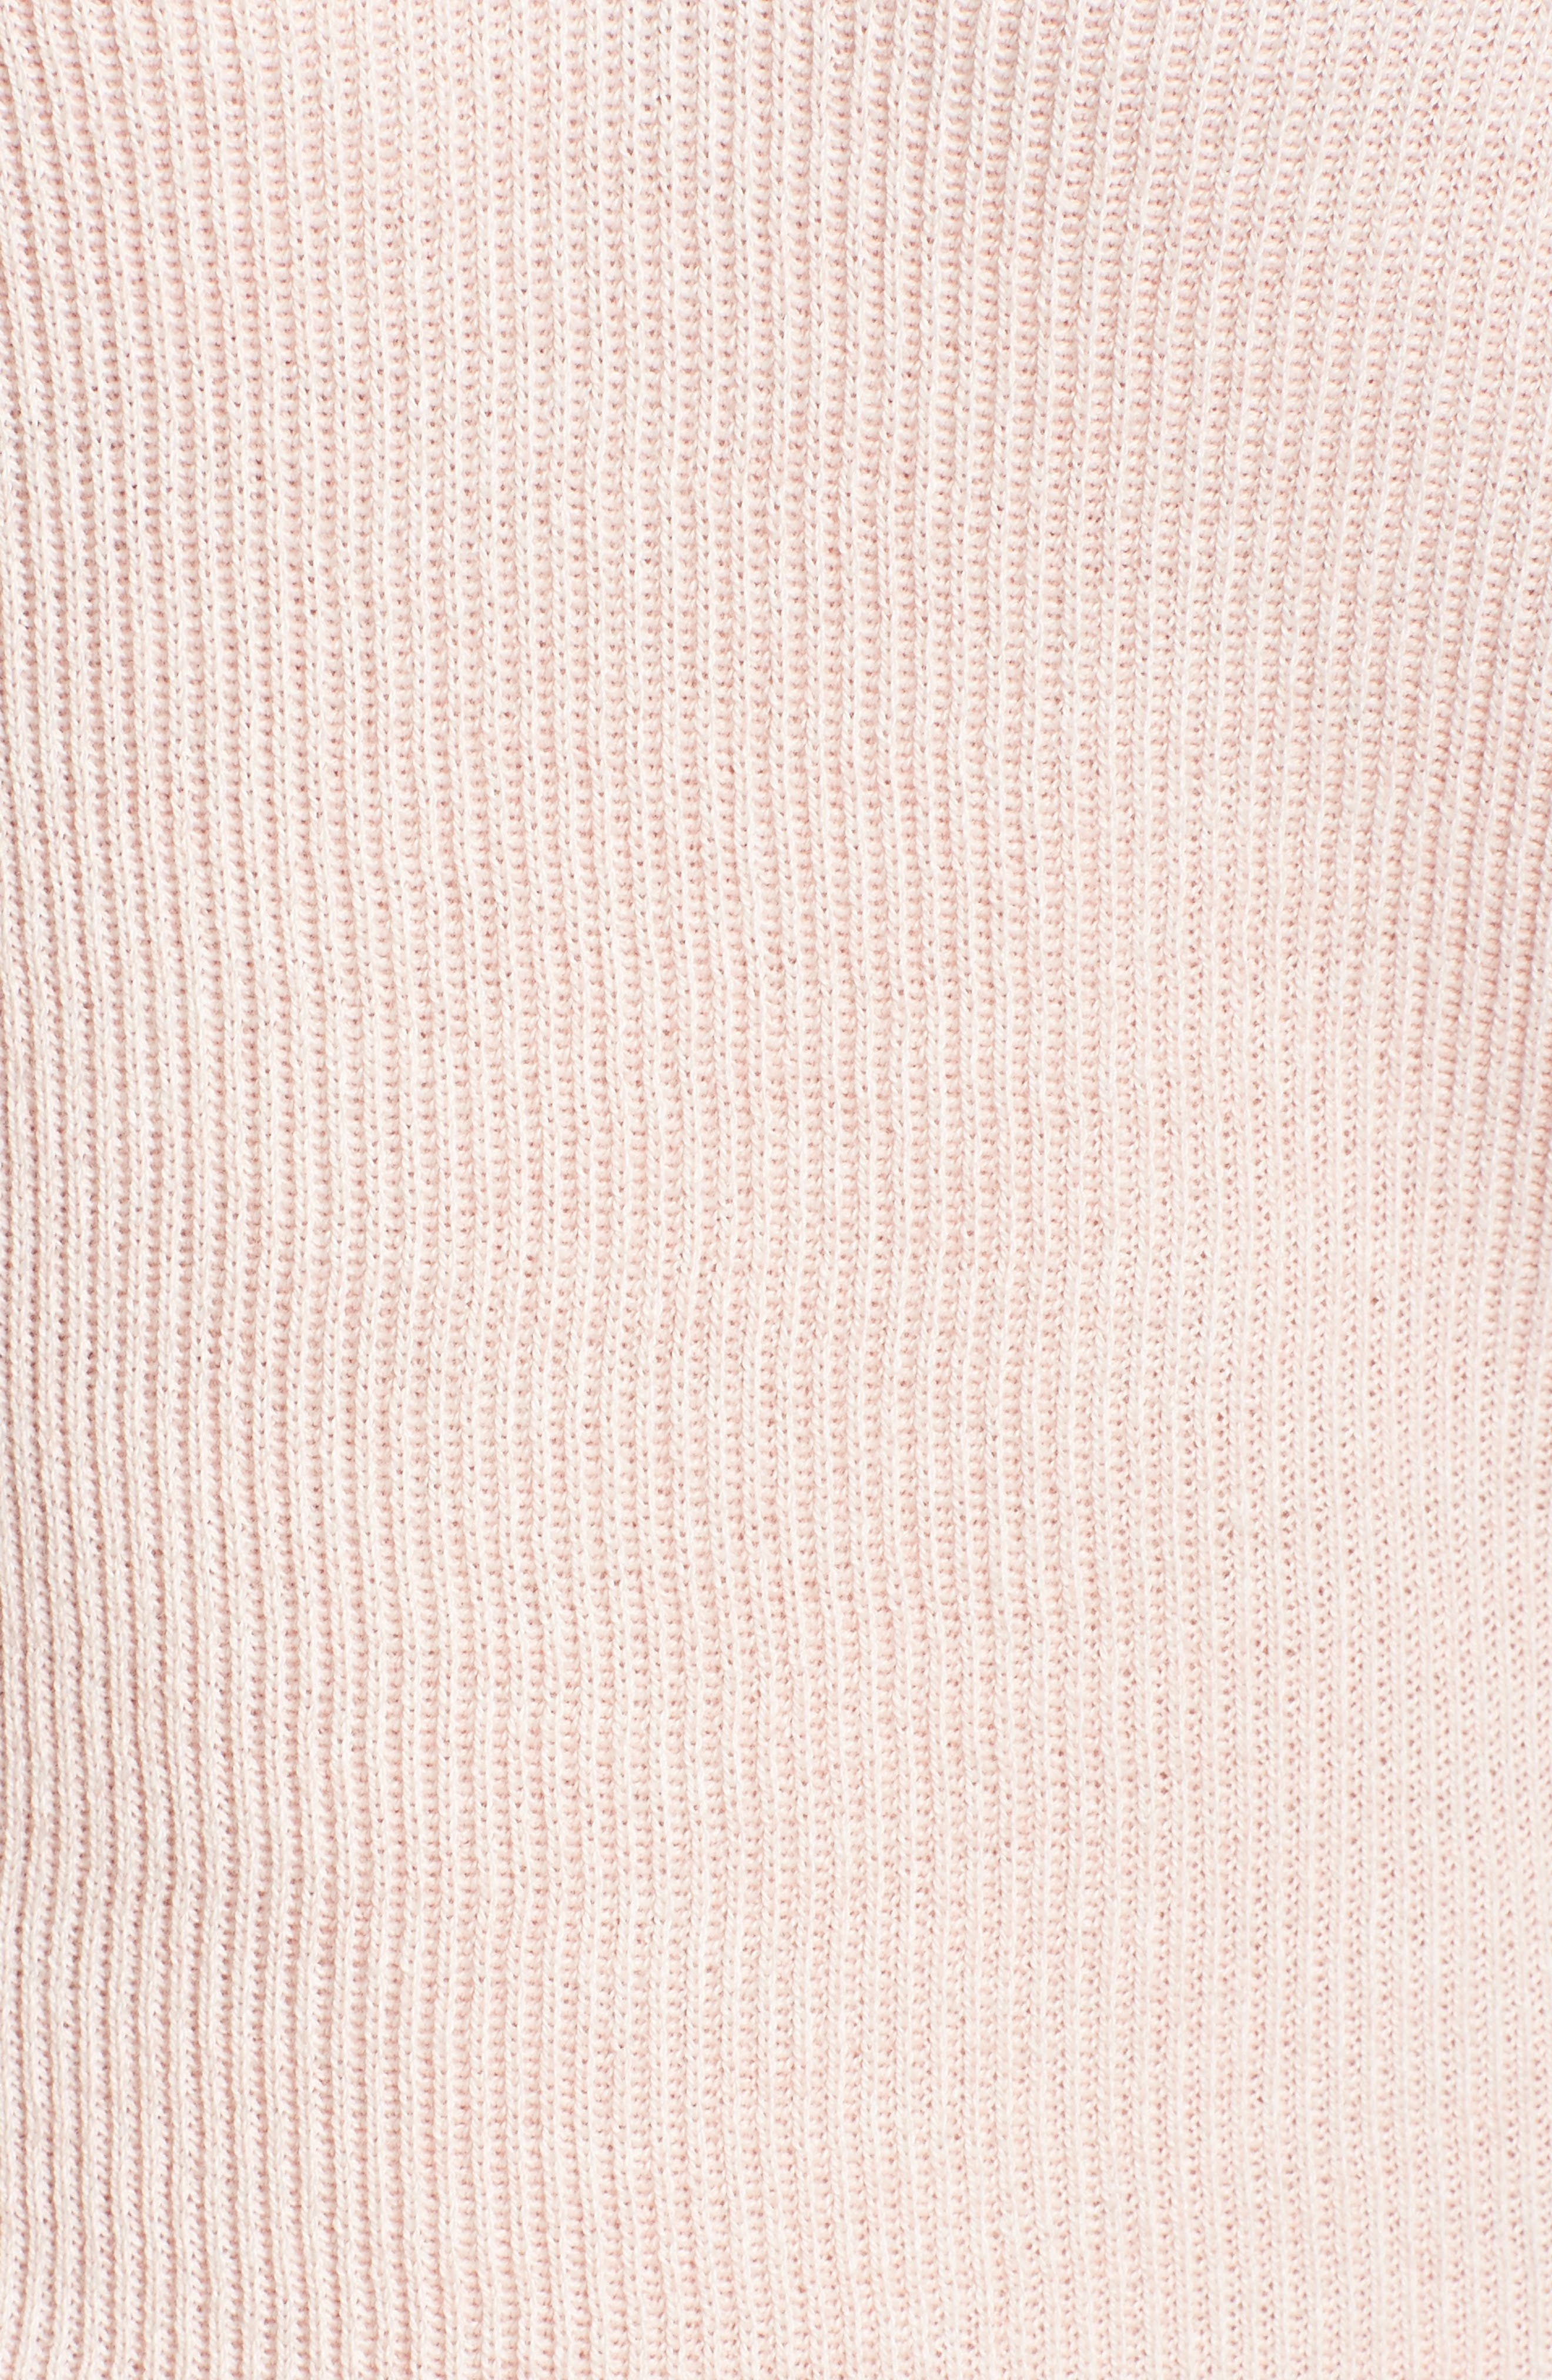 Veronica Lounge Pullover,                             Alternate thumbnail 7, color,                             Soft Pink